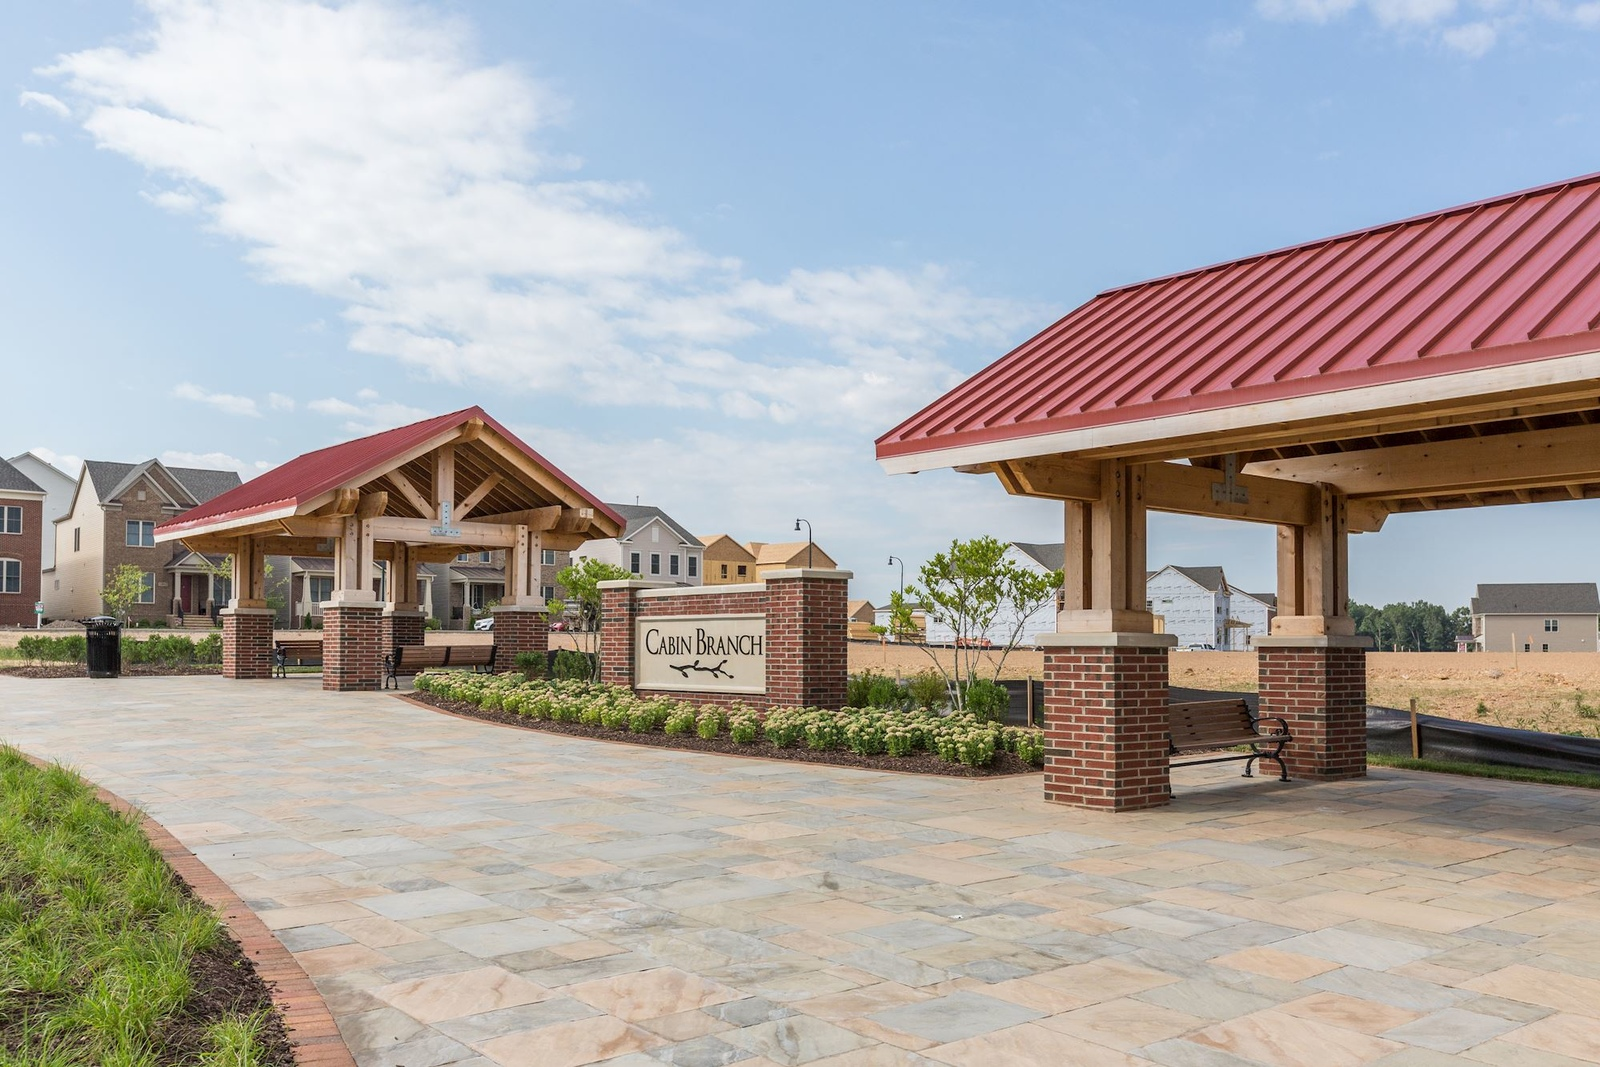 New luxury homes for sale at cabin branch in clarksburg for Cabin branch clarksburg md